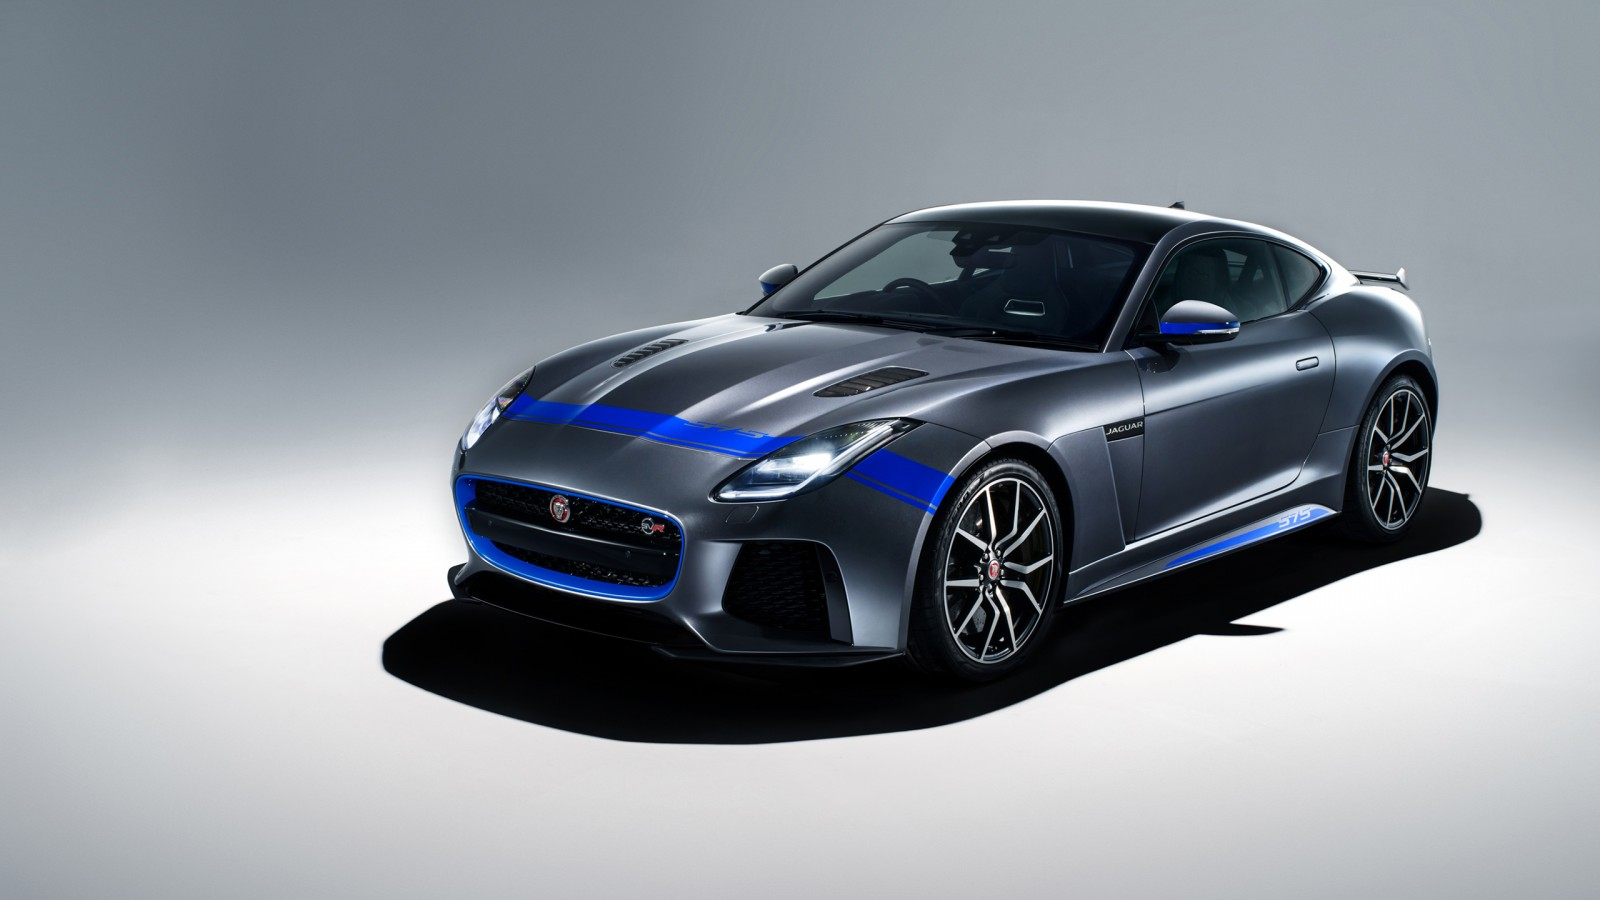 Ultra Hd Wallpapers 8k Cars Pack 2018 Jaguar F Type Svr Graphic Pack Coupe 4 Wallpaper Hd